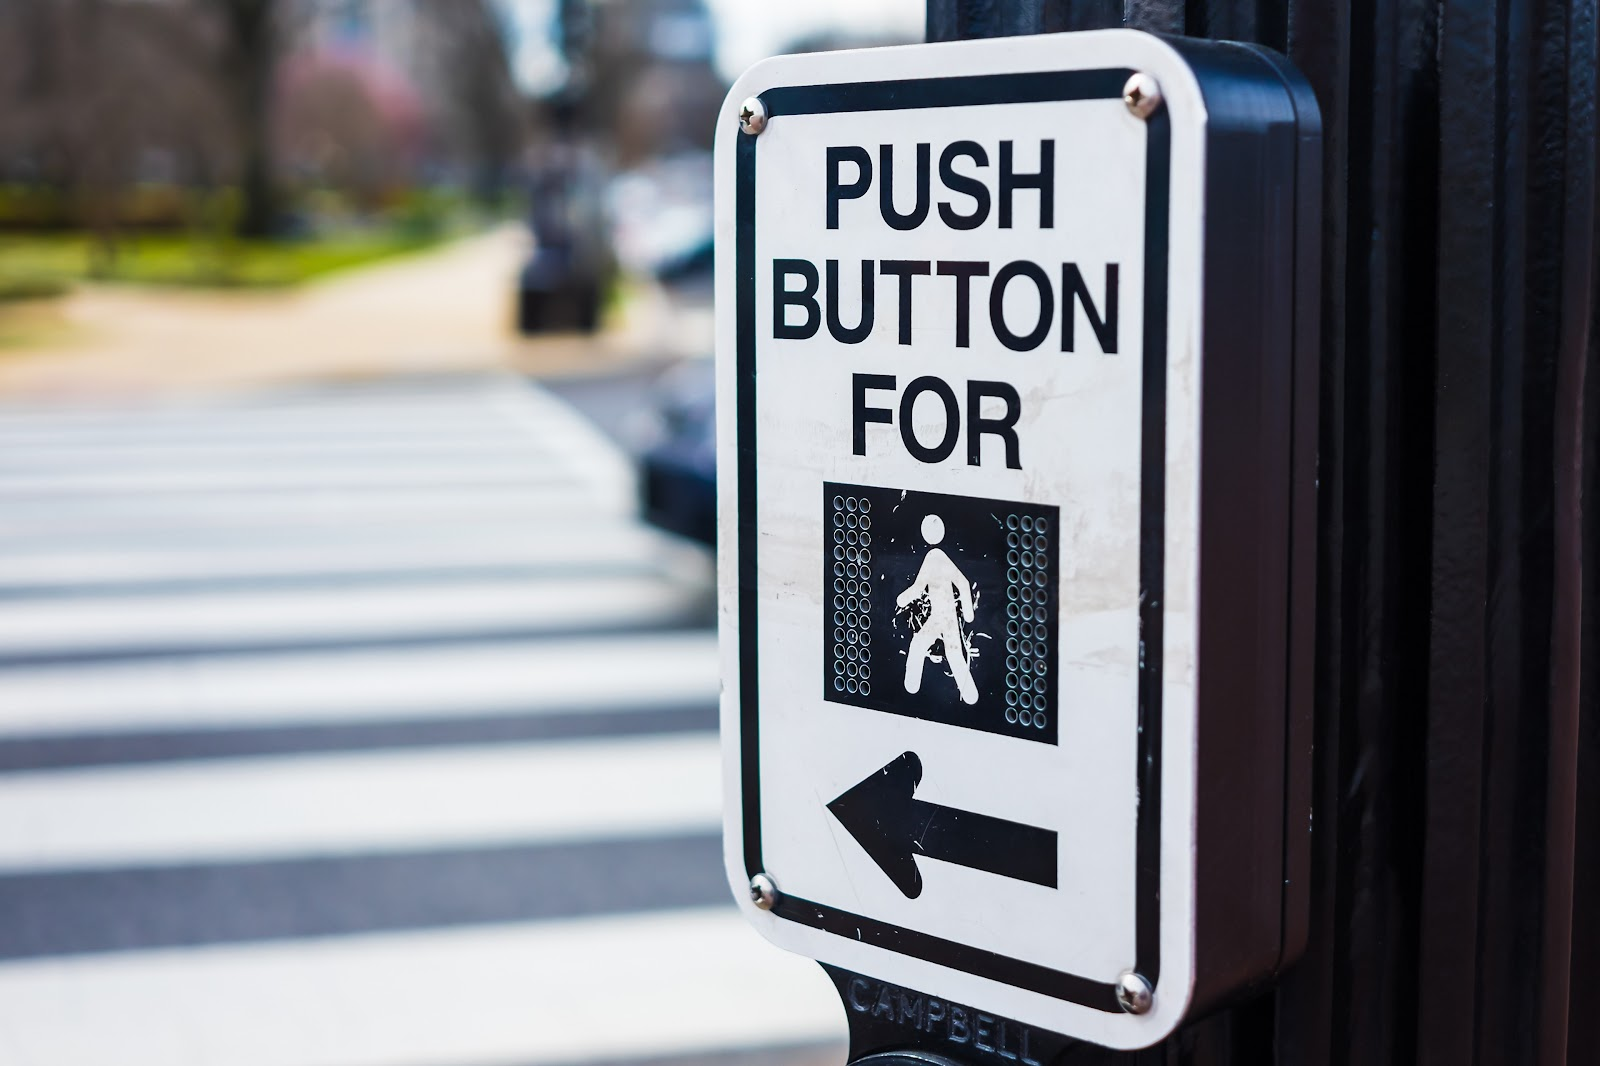 A crosswalk signal sign prompts pedestrians to push the button to activate the signal.